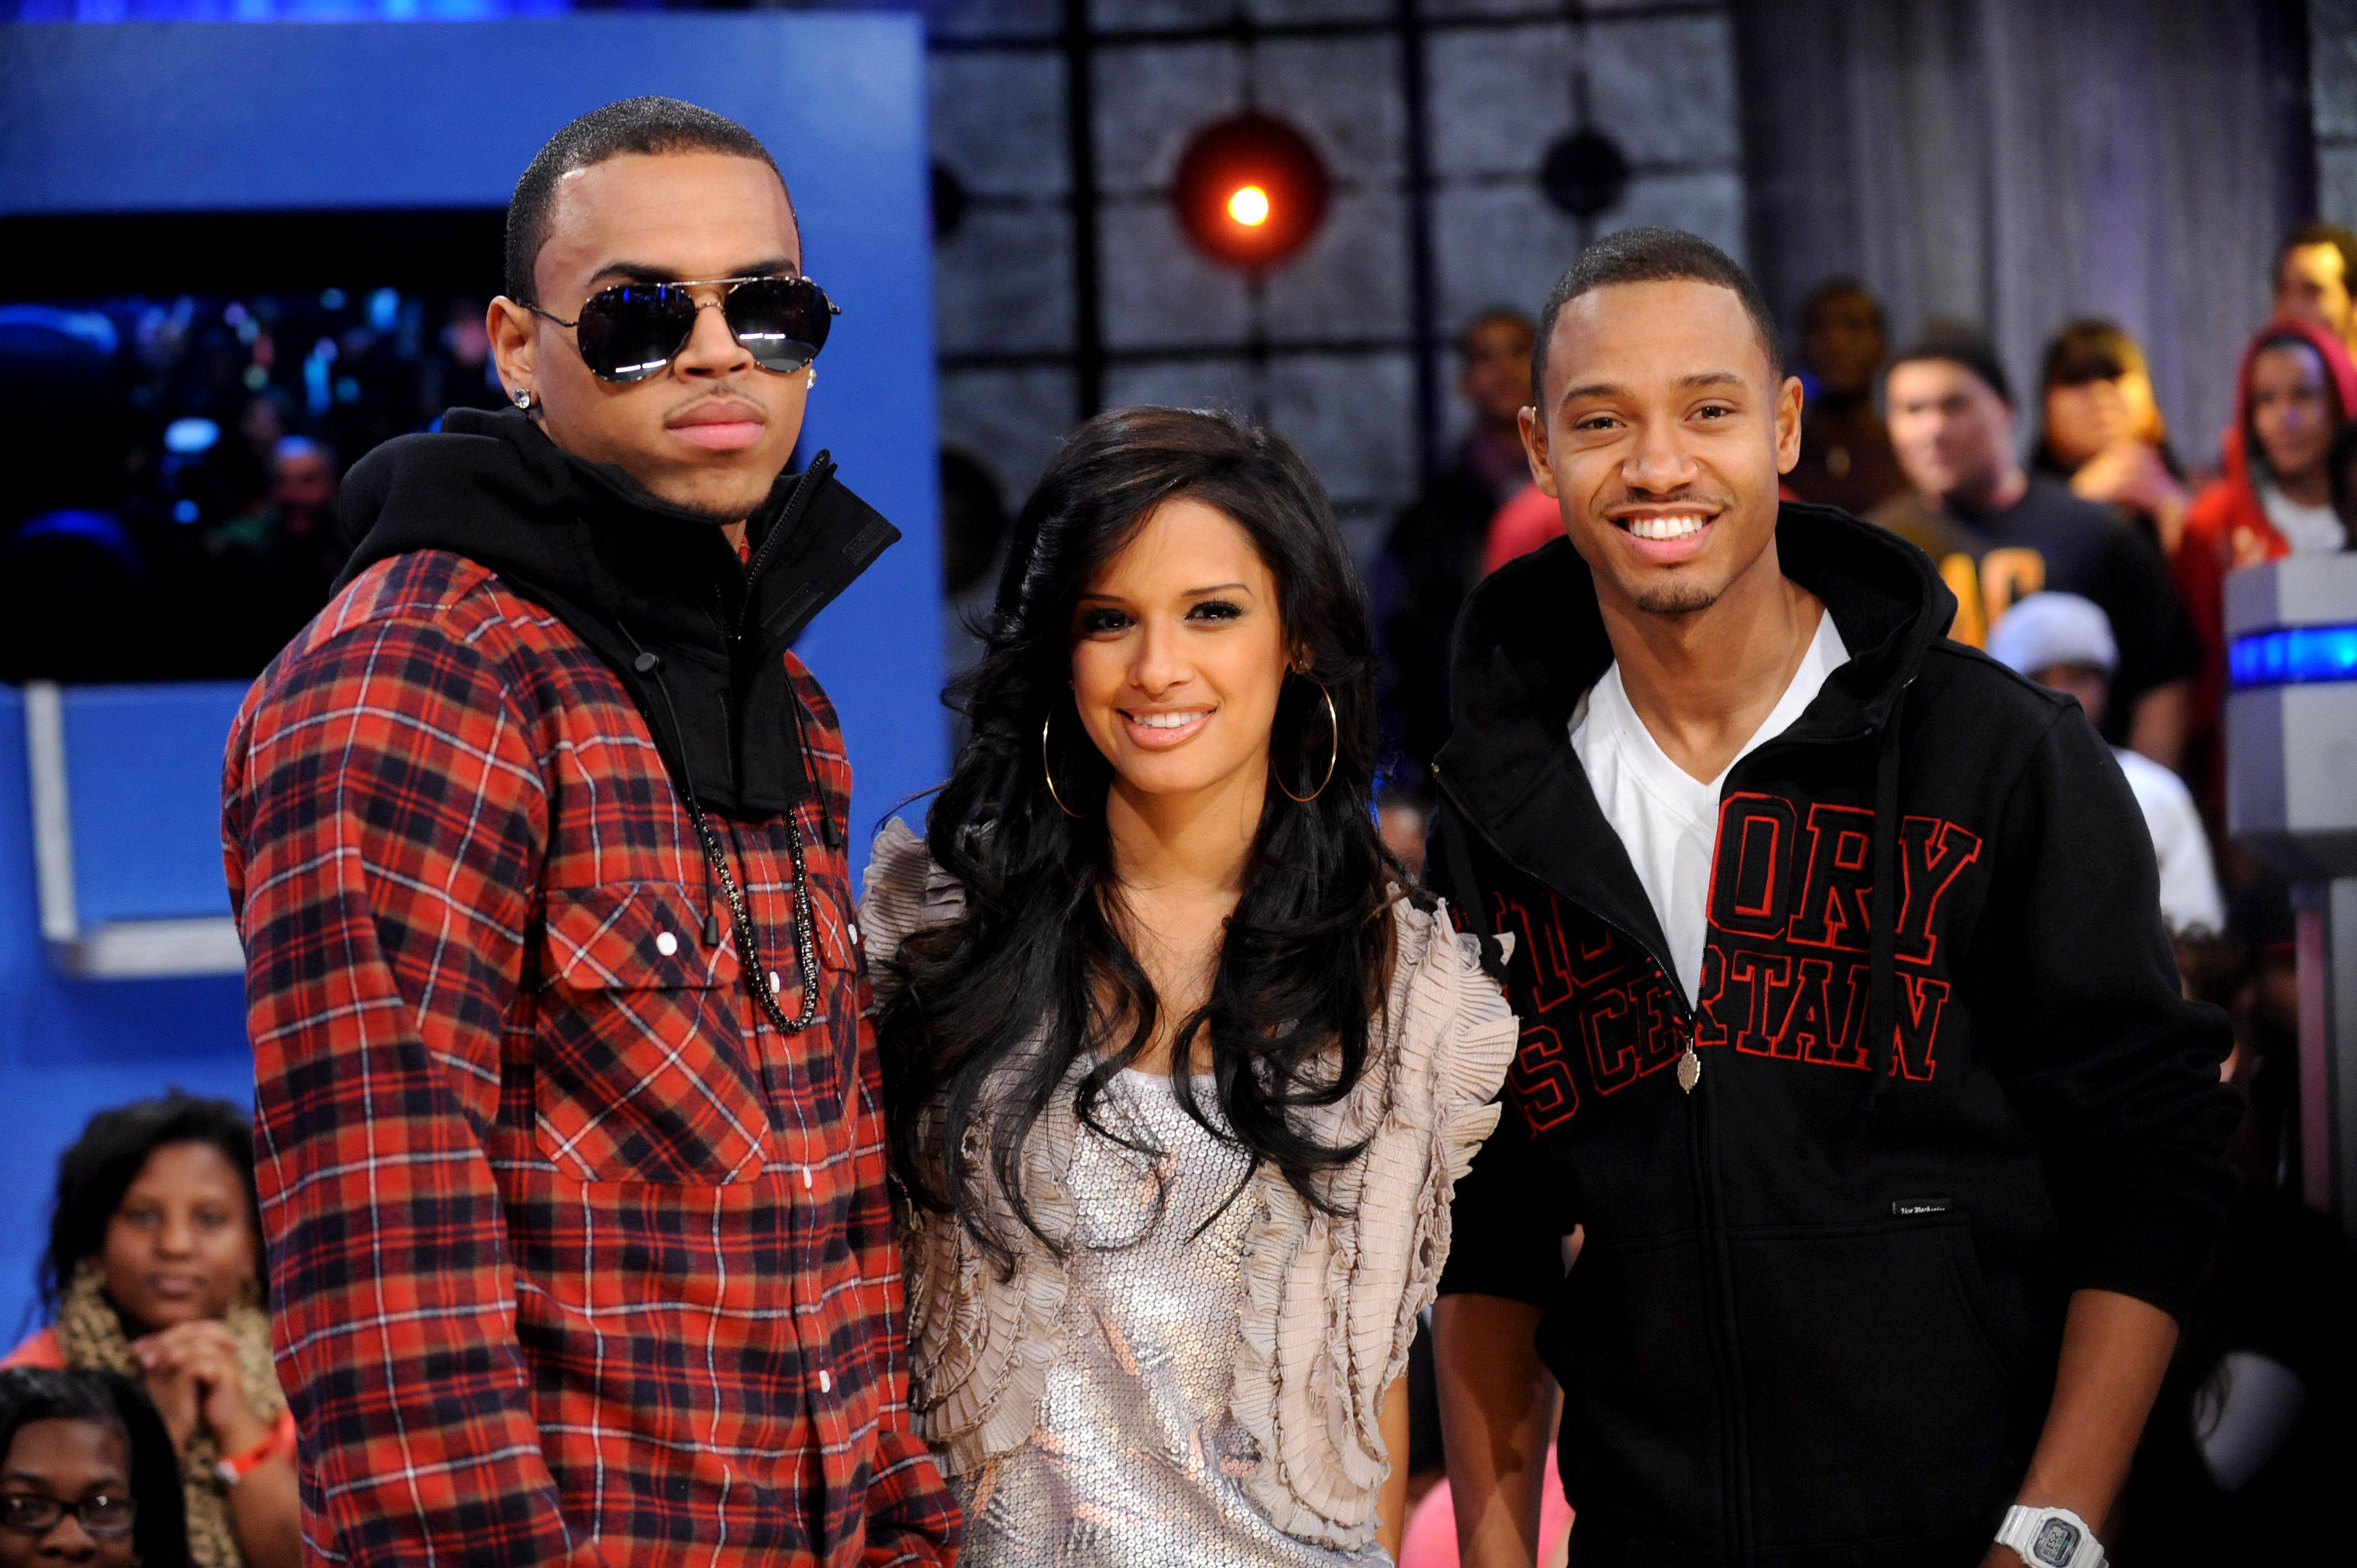 """5. He Made 106 & Park History - His first televised performance of """"Deuces"""" was on 106 & Park. It marked a comeback of sorts for the singer and would go on to become a national hit.   (Photo by Brad Barket/PictureGroup)"""